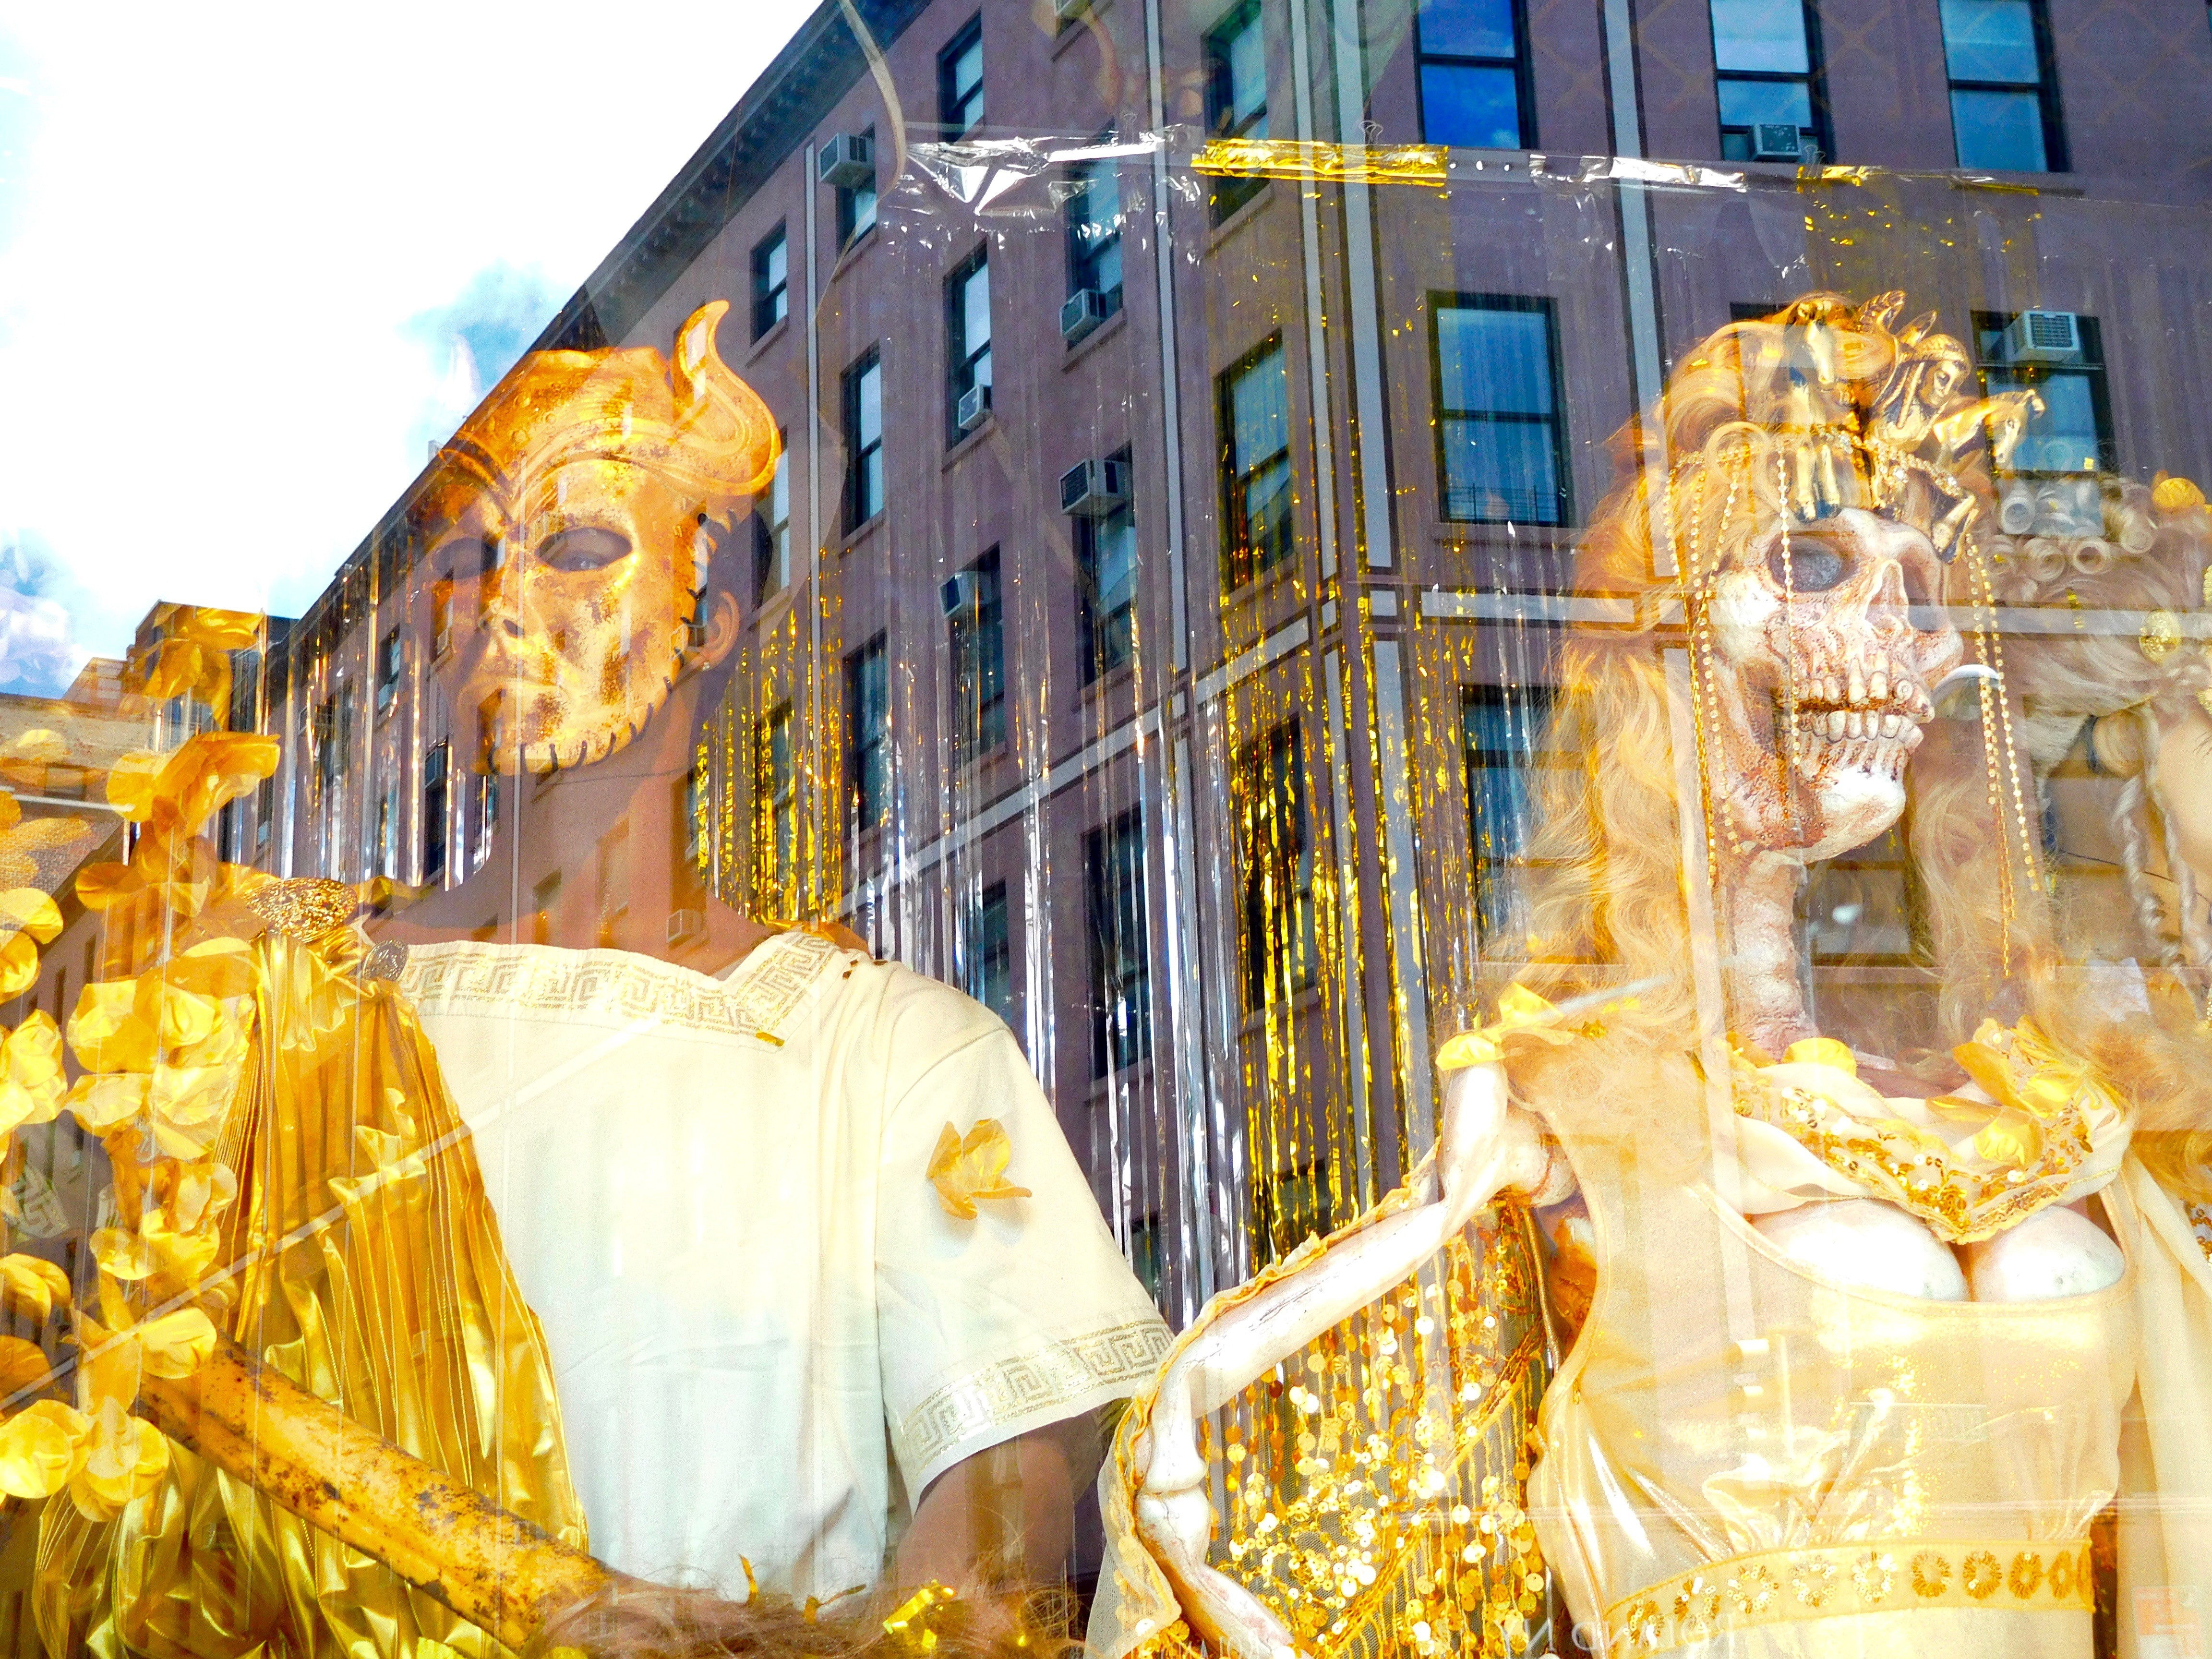 Two golden figures, one a skeleton, are displayed in a window that shows a reflection of the building behind it.